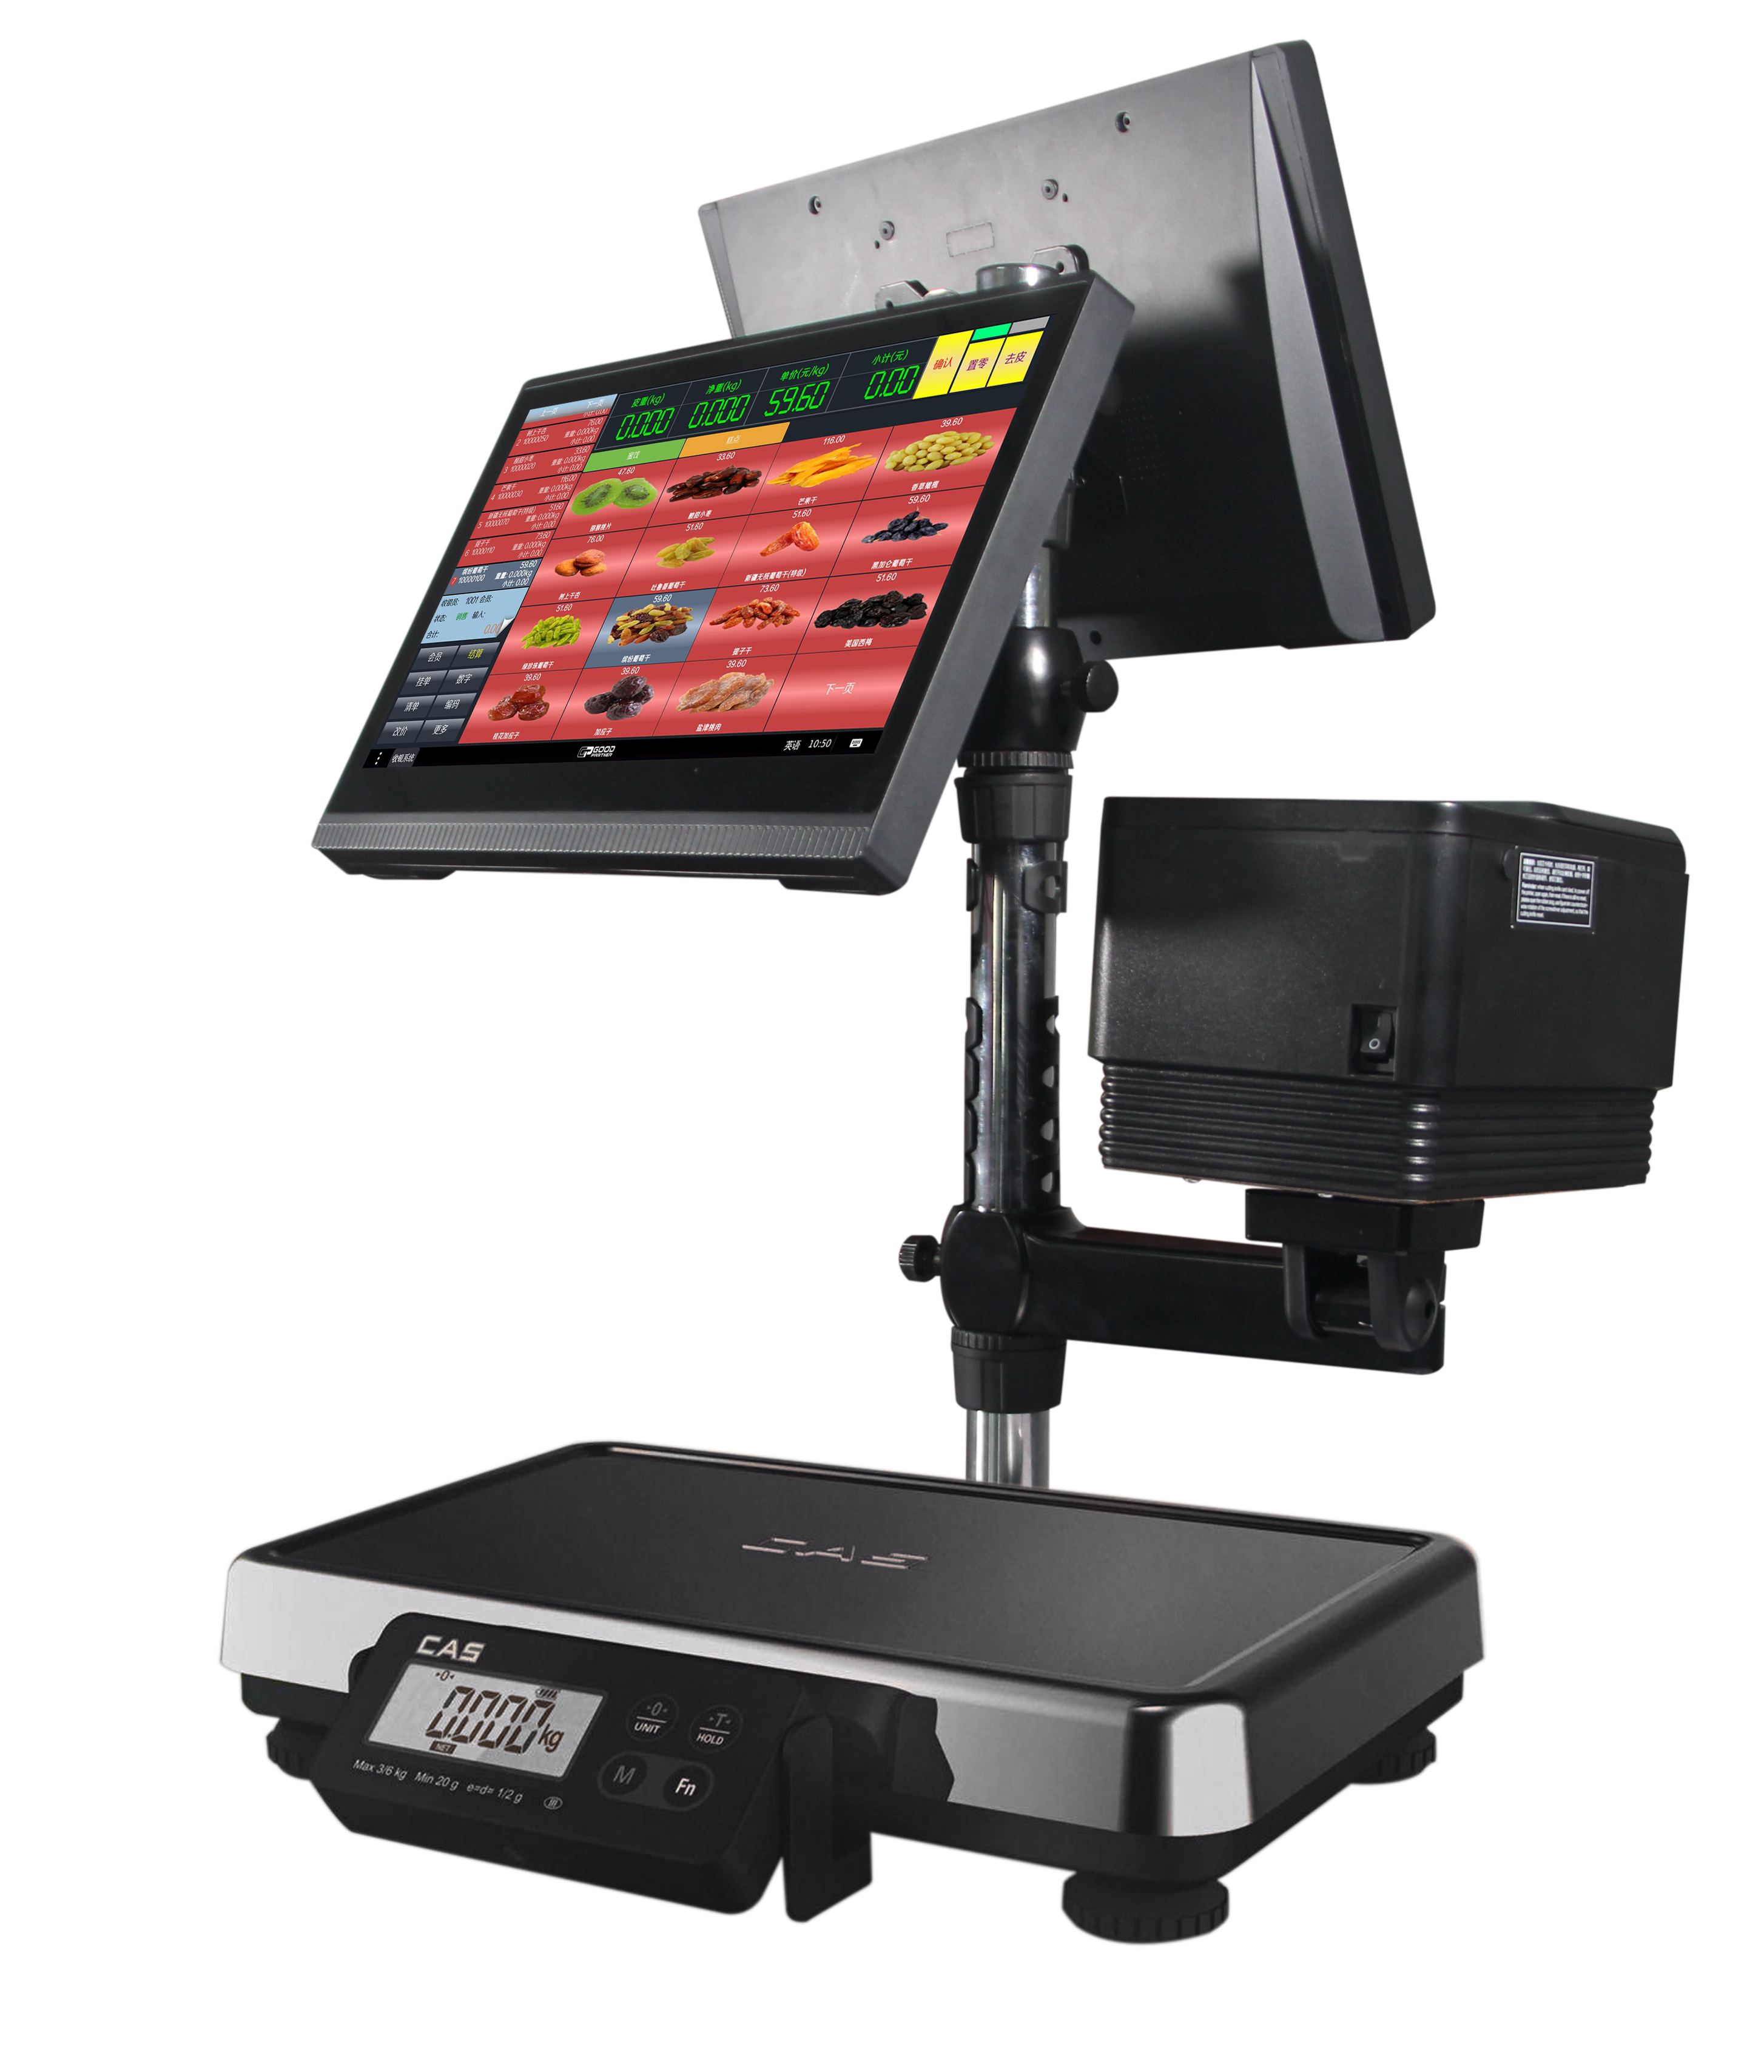 HDD-780 Alle In Een Betaling Terminal Kassa Dual Screen 14 Inch Capacitive Touch Panel Met 80 Mm Printer Pos systemen